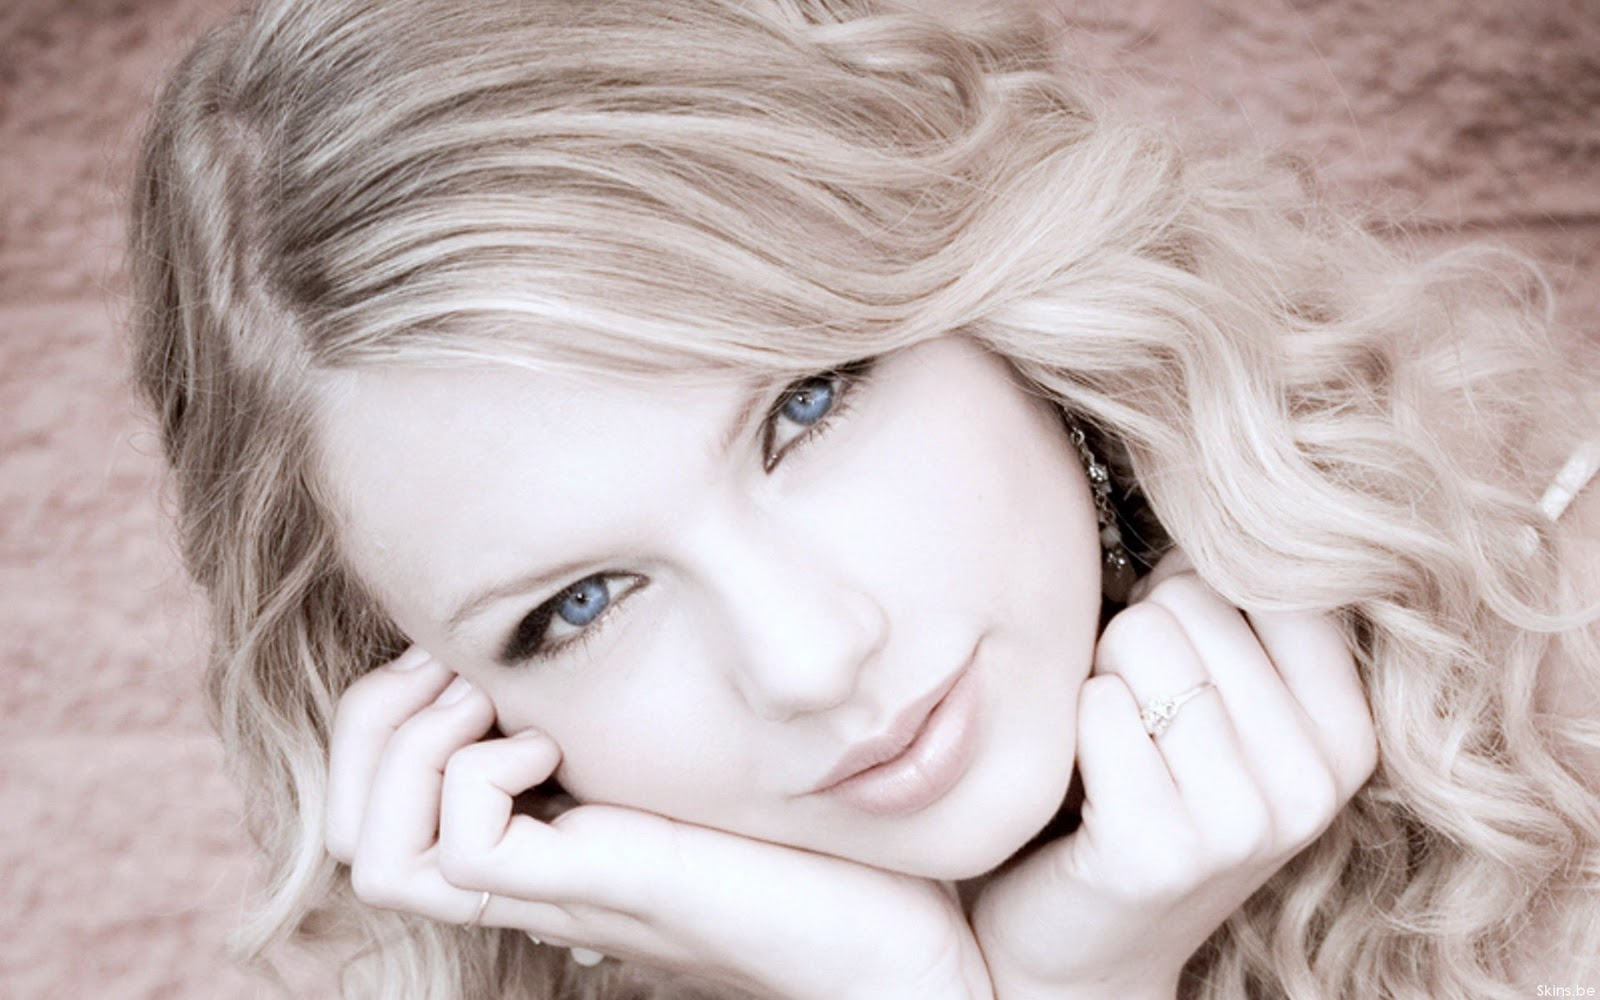 http://2.bp.blogspot.com/-1k8s3NENqr0/Tf0eBXP9VNI/AAAAAAAAAsc/CDeQ7NtBXeQ/s1600/2Beautiful+eyes+of+Taylor+Swift.jpg